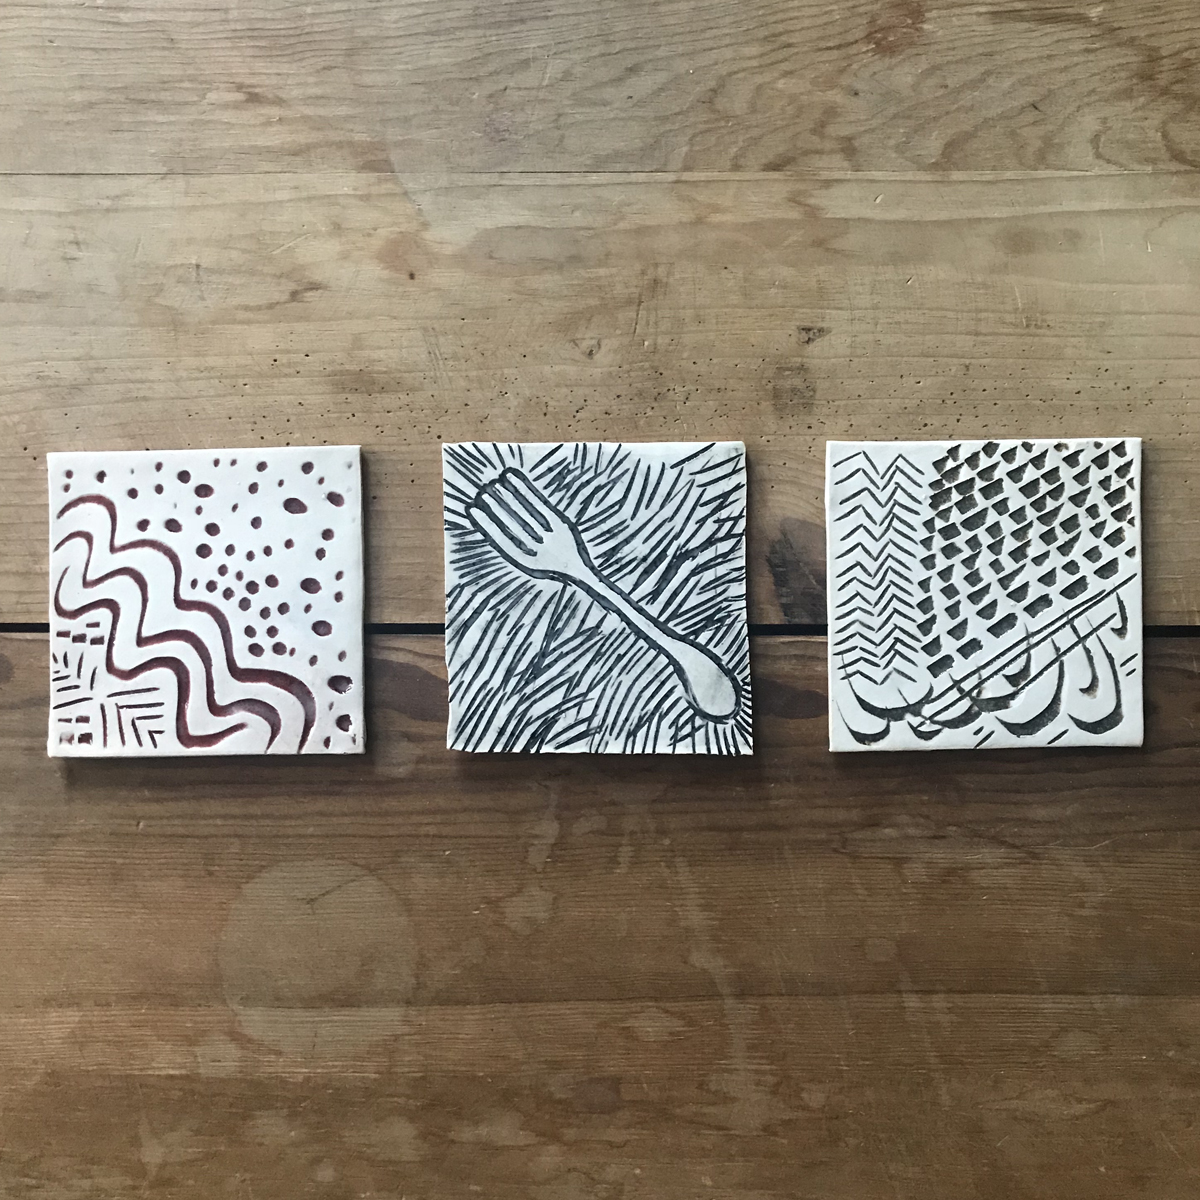 Silly Glaze Test Coasters 053, $2 each